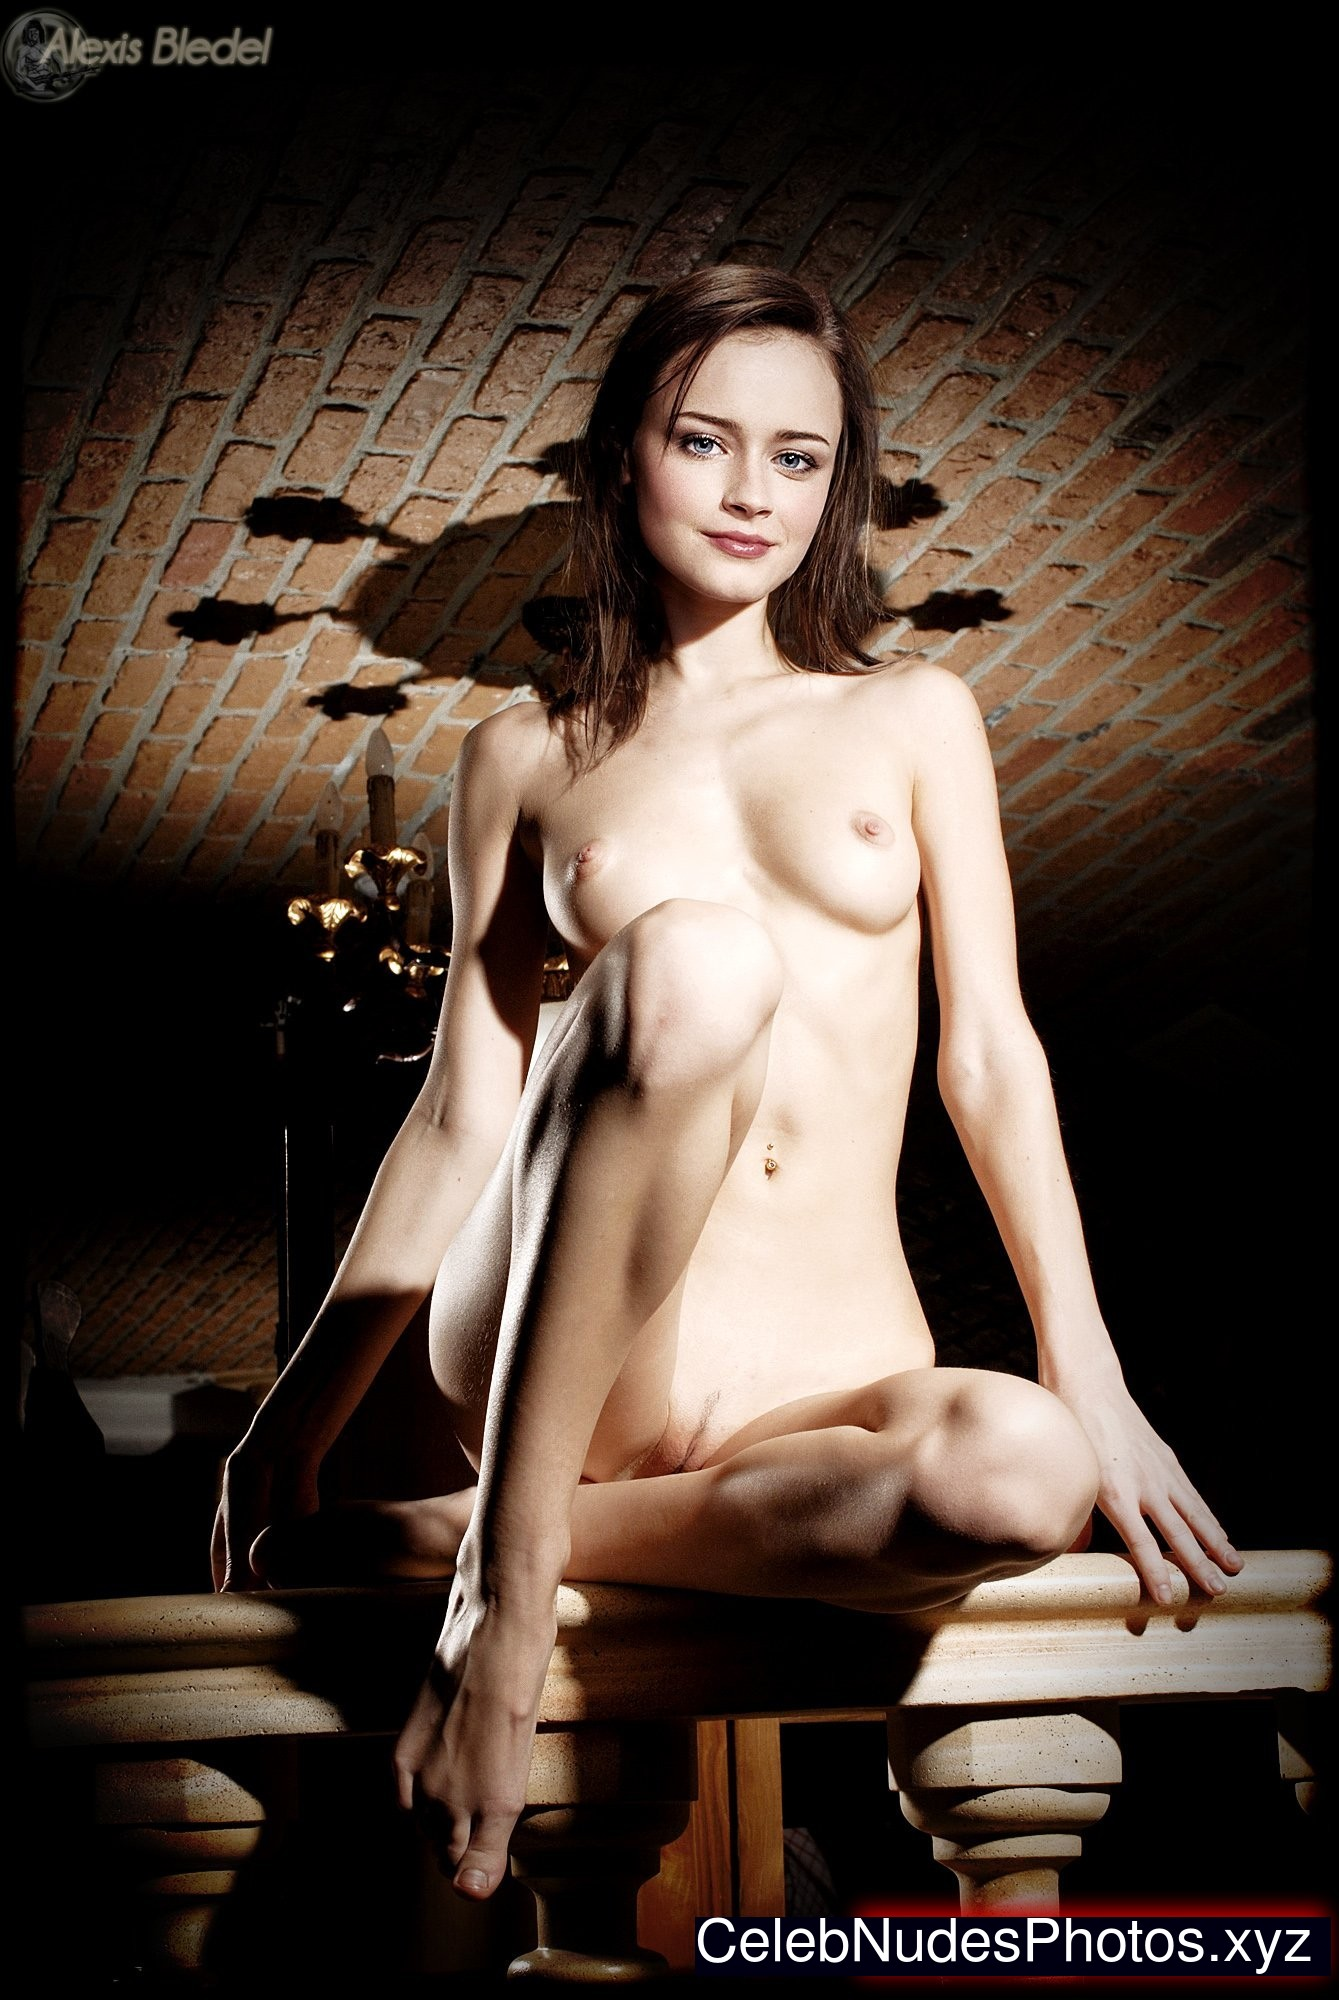 alexis bledel hot naked nude